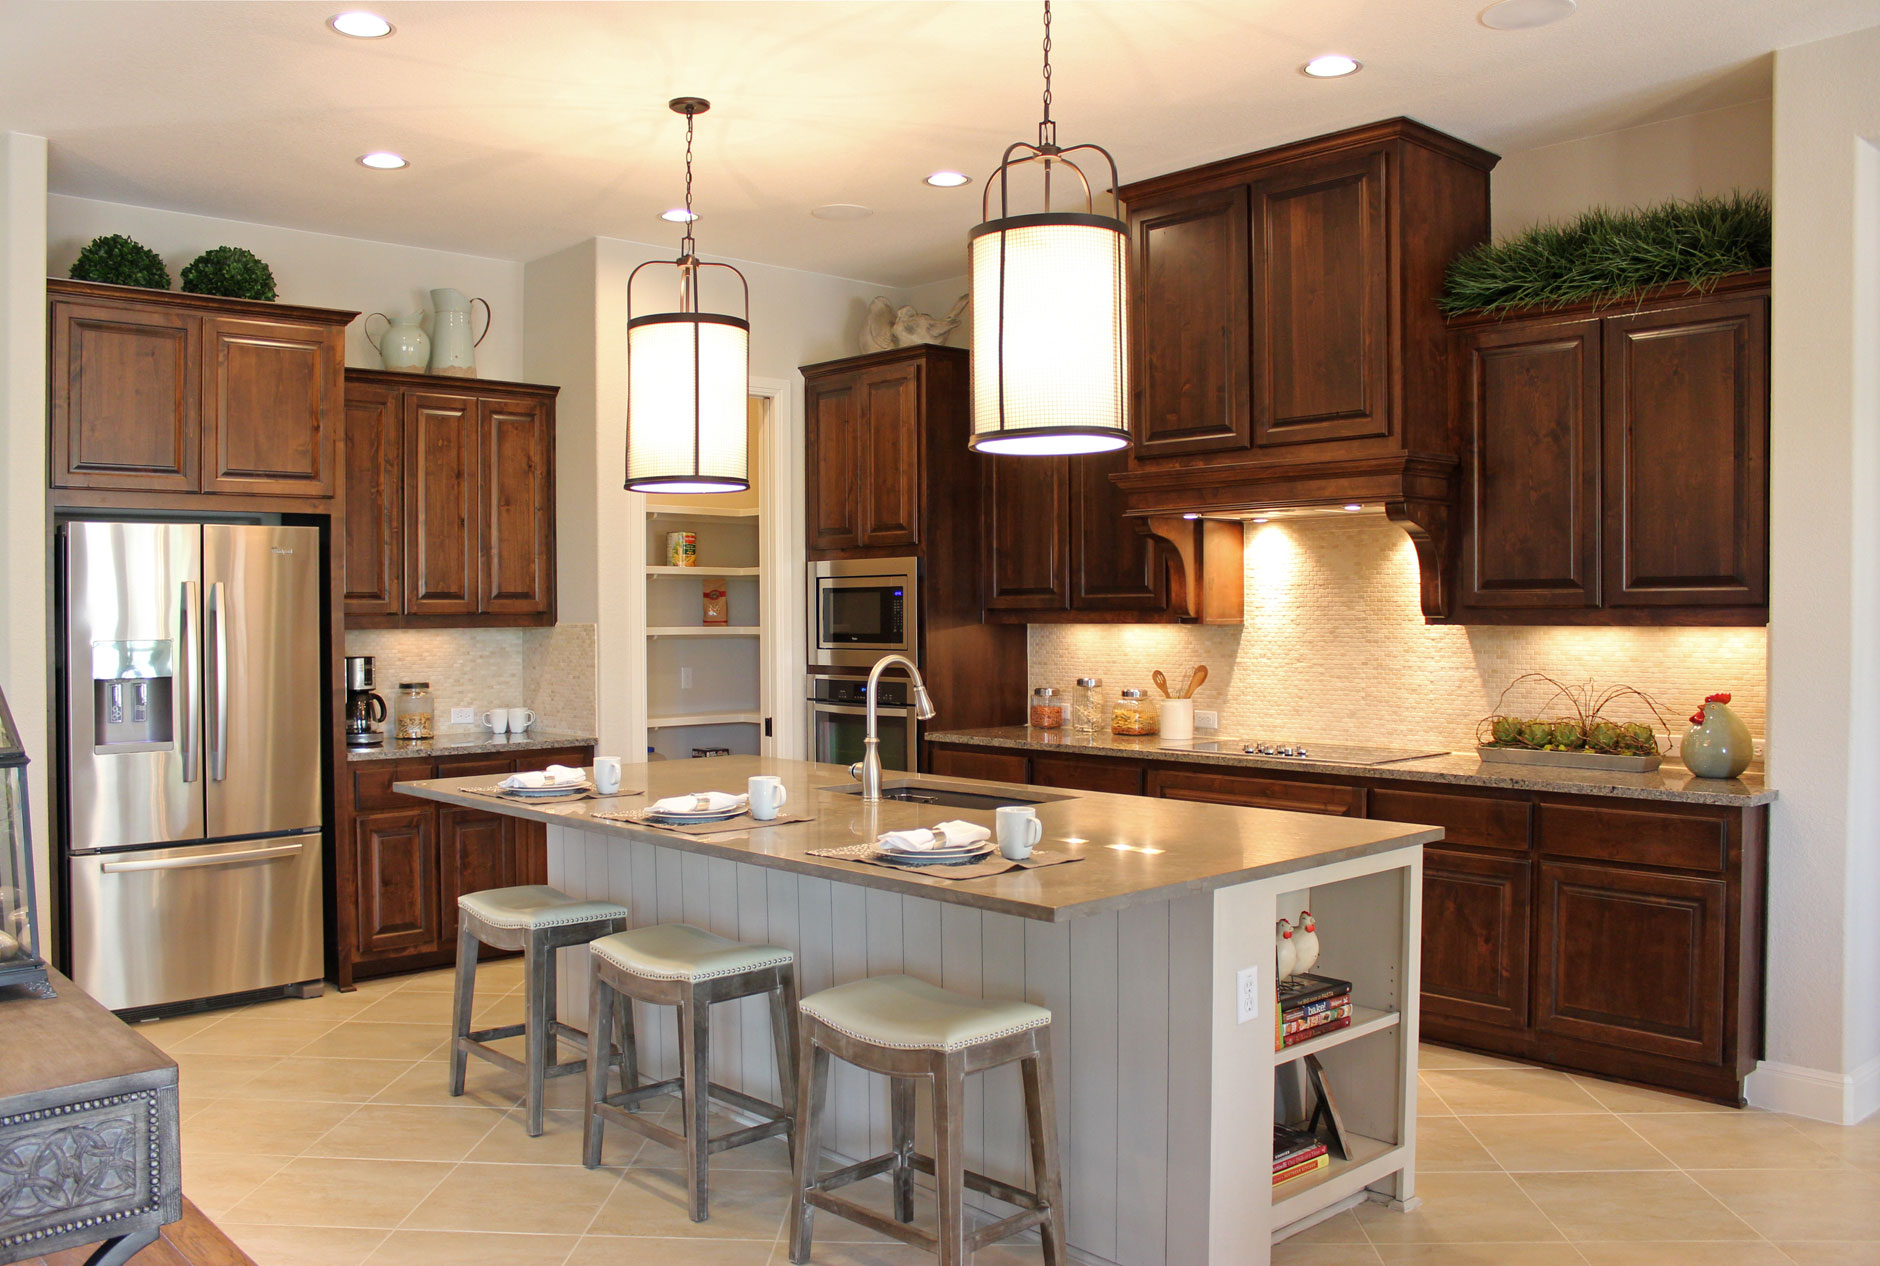 burrows cabinets kitchen in knotty alder w custom vent hood - Alder Kitchen Cabinets